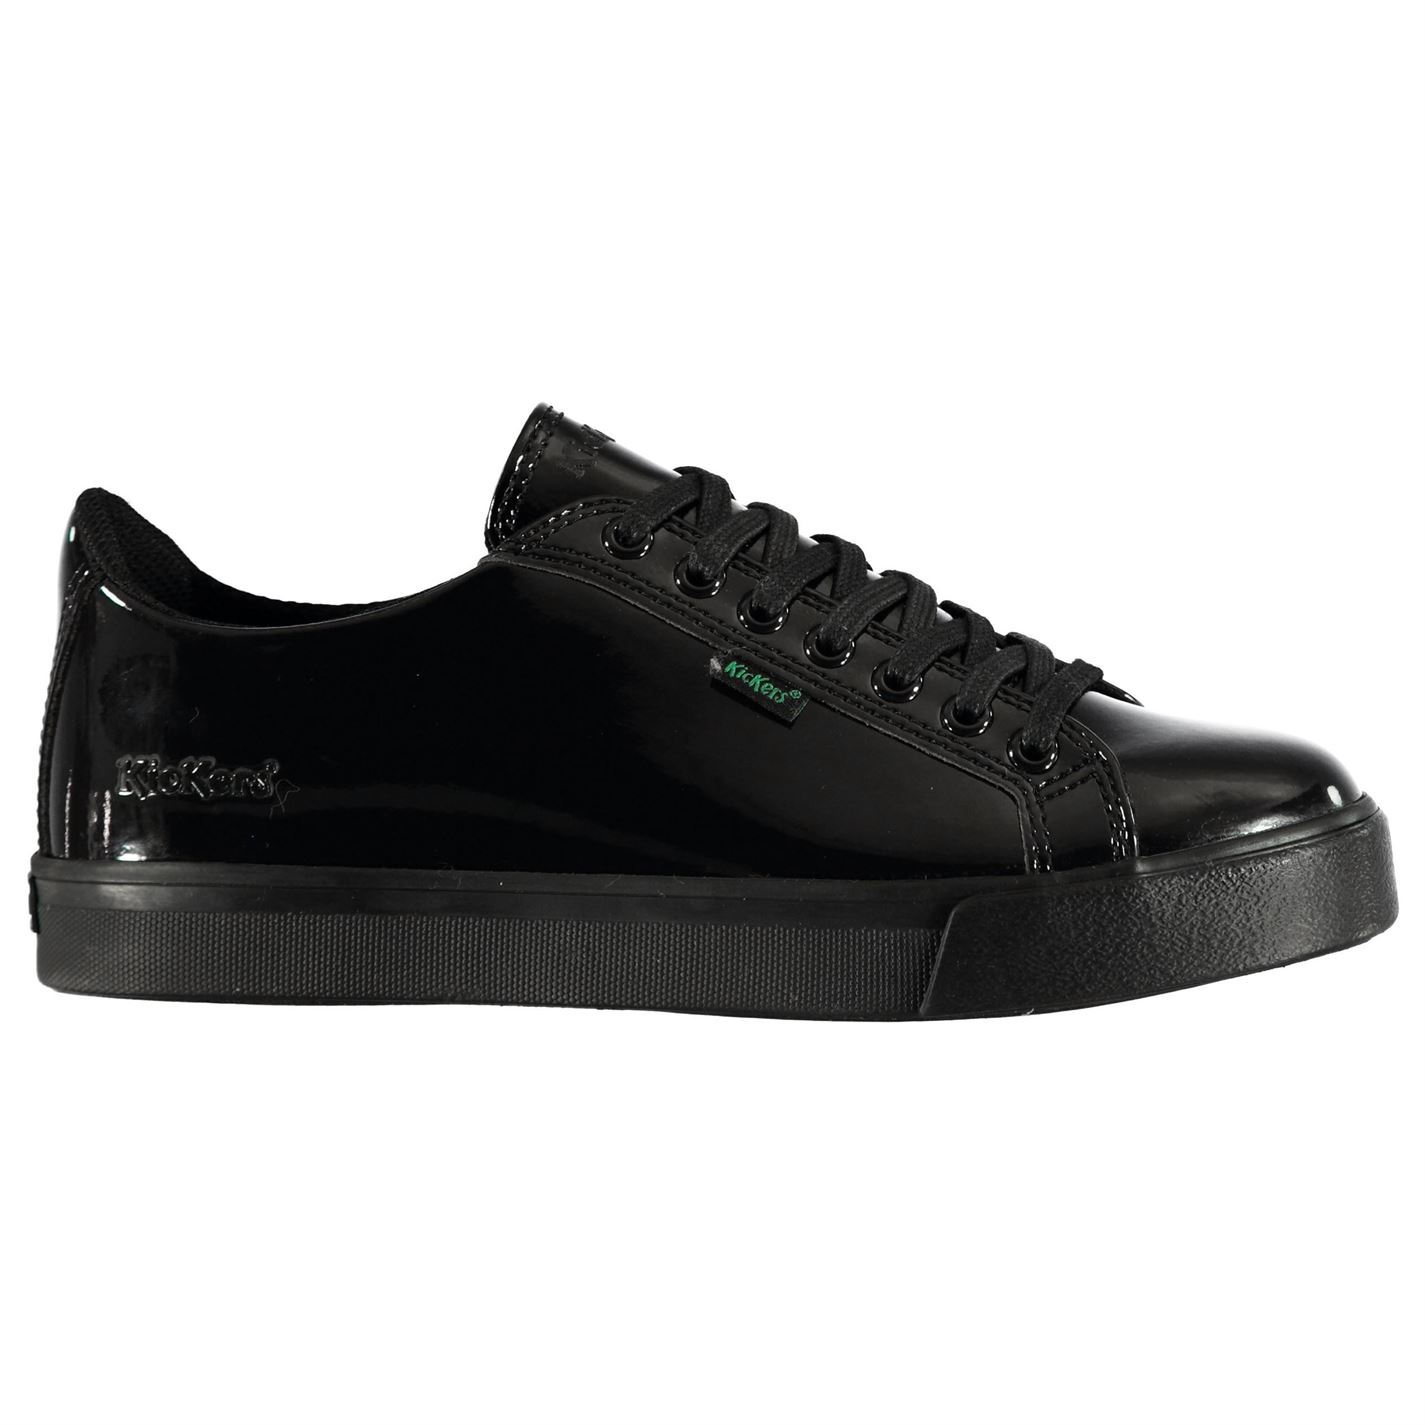 6bfea994 Details about Kids Kickers Tovni Patent Shoes Low Trainers Tonal Stitching  New